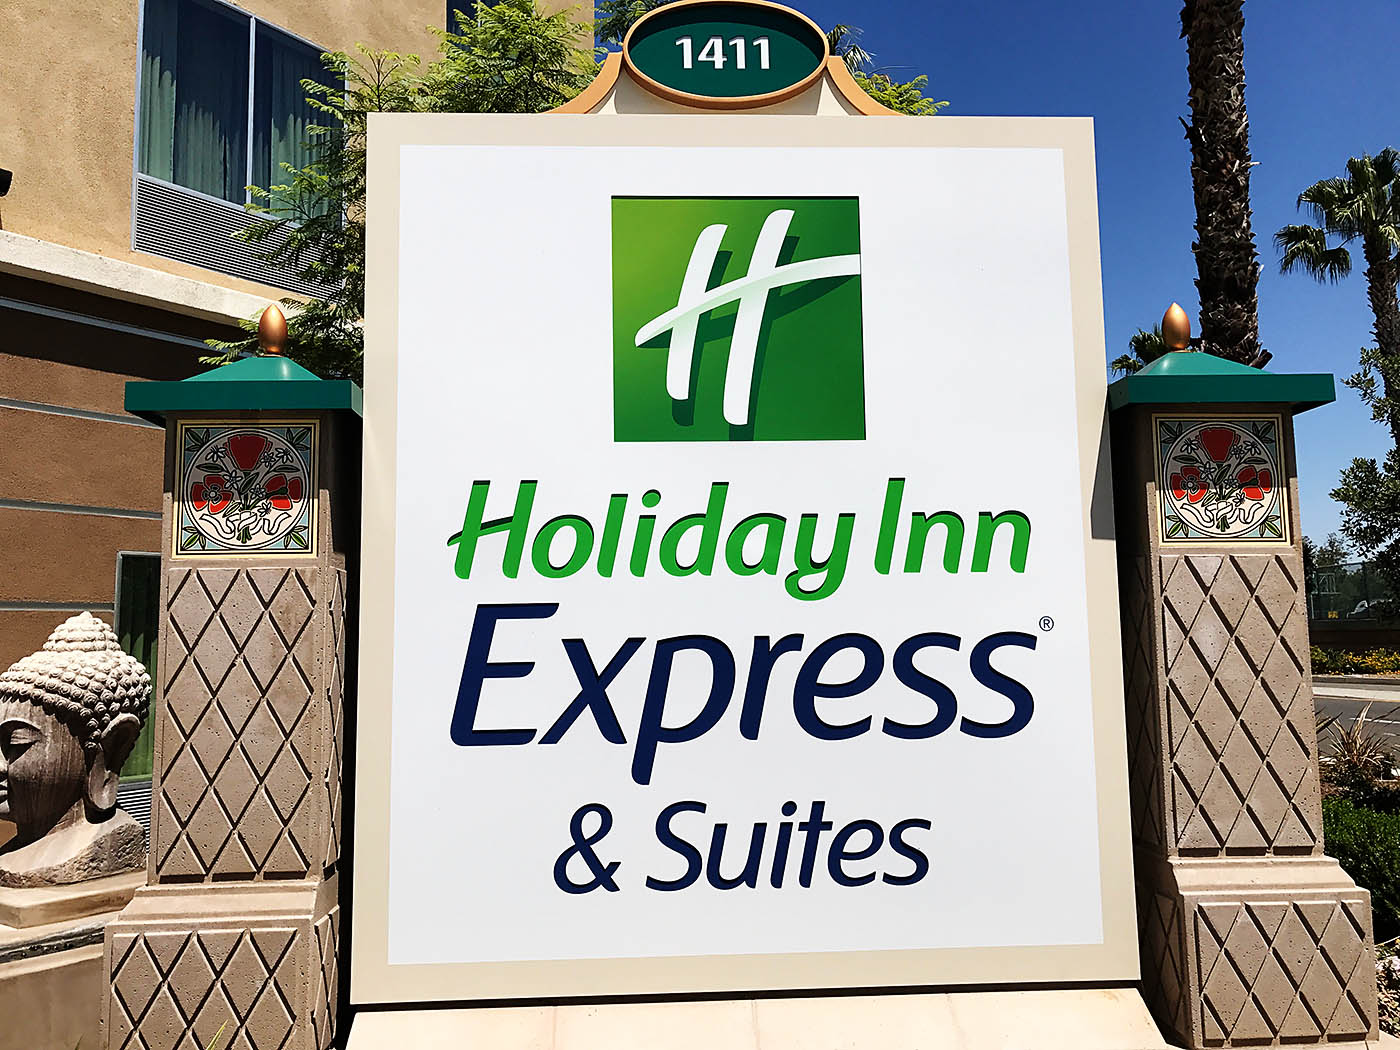 Review of Holiday Inn Express & Suites Anaheim Resort area - a great hotel option within walking distance to Disneyland